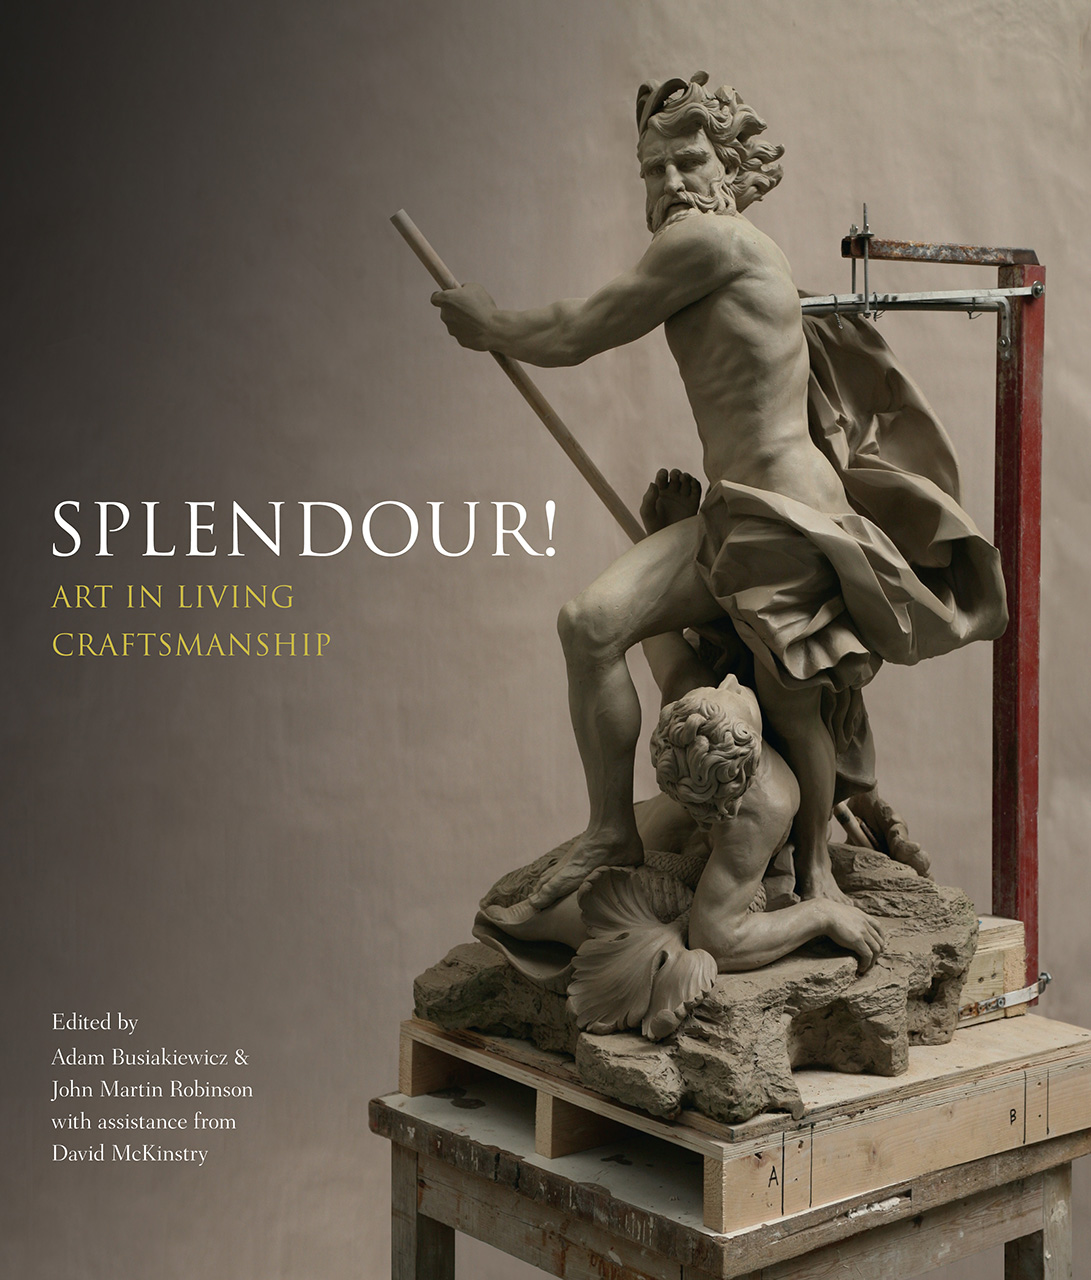 Splendour!: Art in Living Craftsmenship